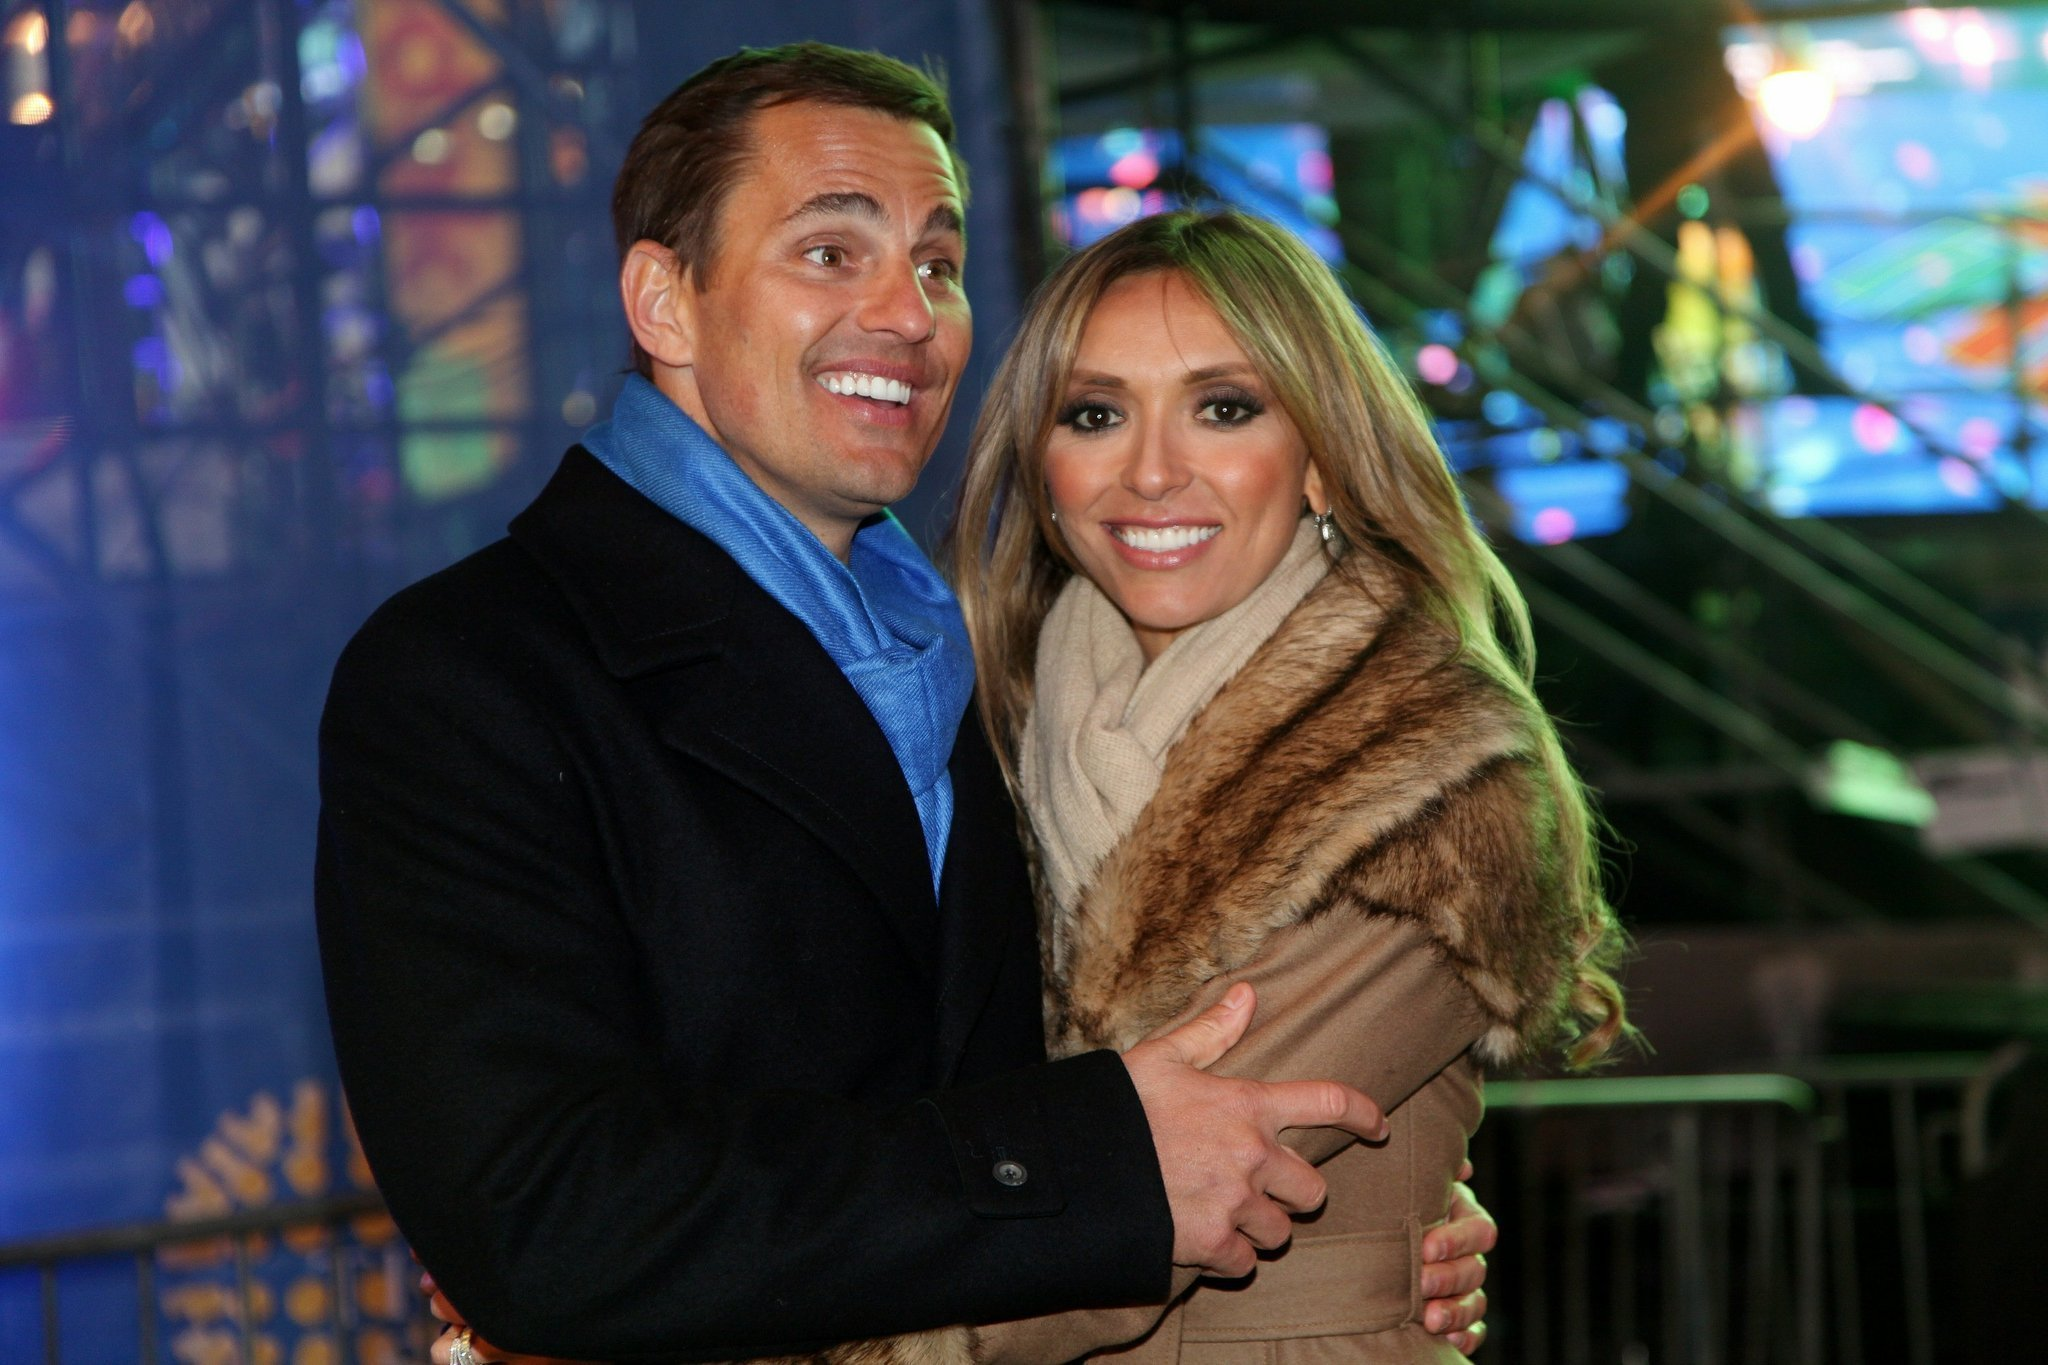 bill rancic interviews wife giuliana in chicago for